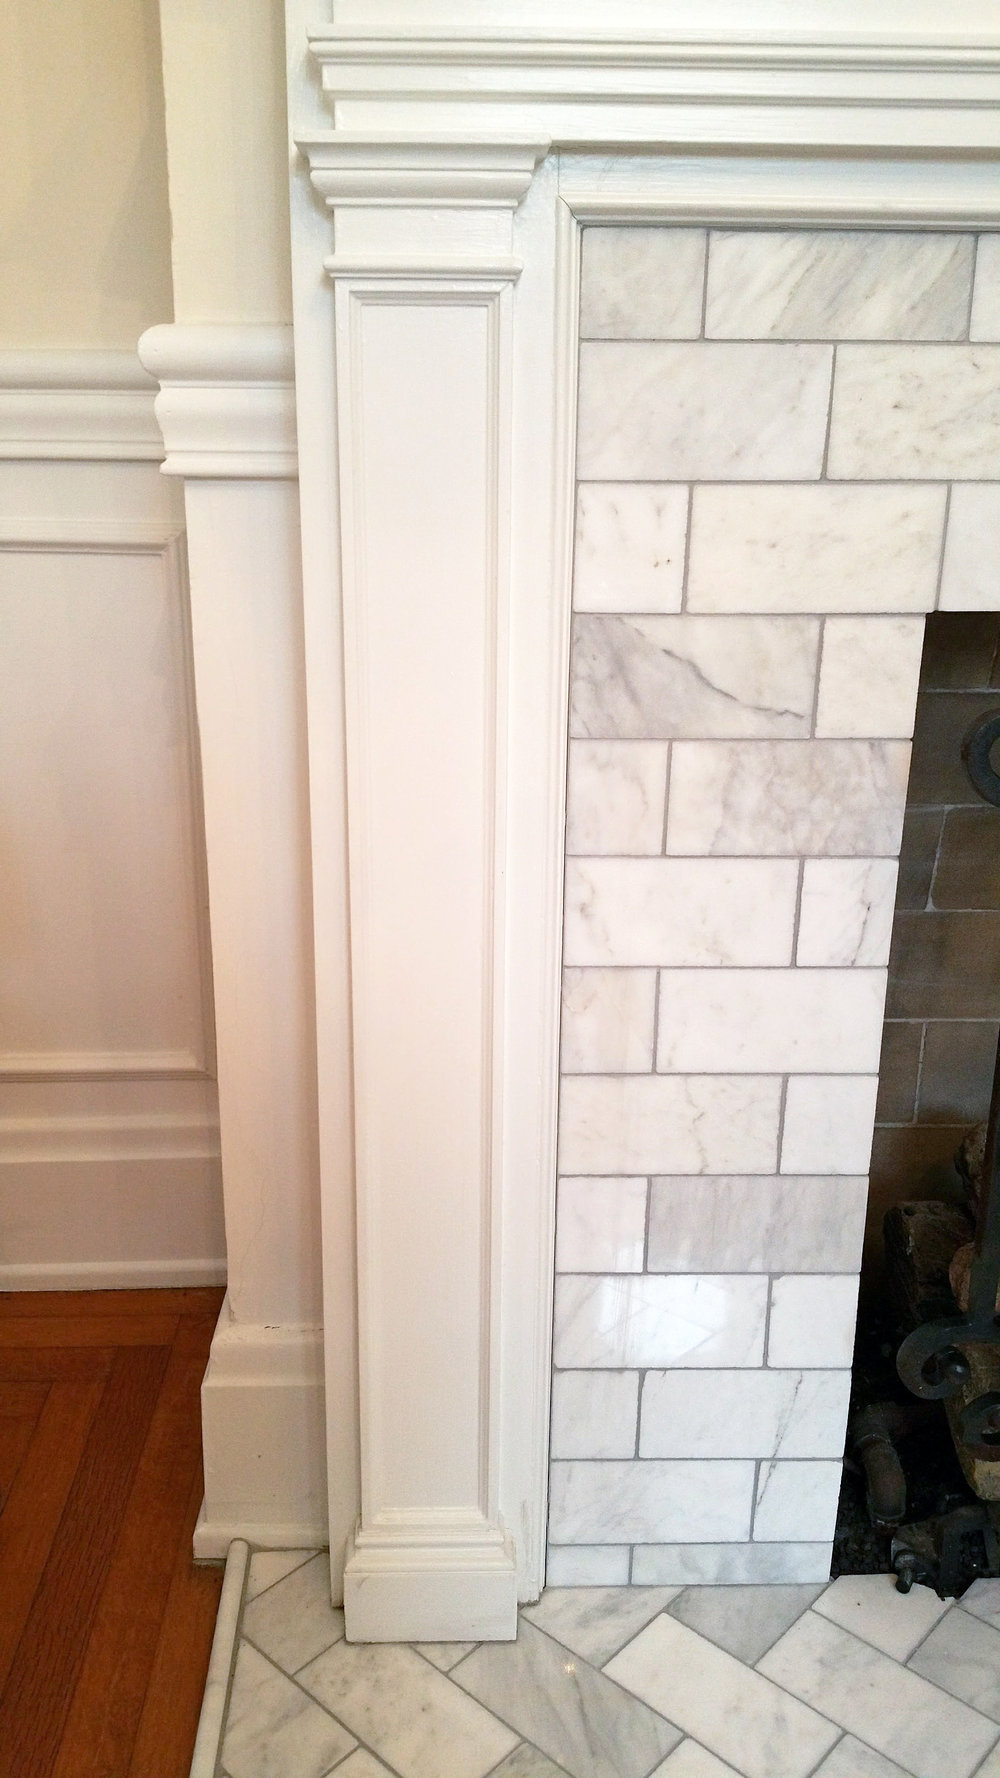 Living Room Fireplace Detail  Carrera Marble  (Facing Tiles in Subway Layout Hearth Tiles in Herringbone Pattern)